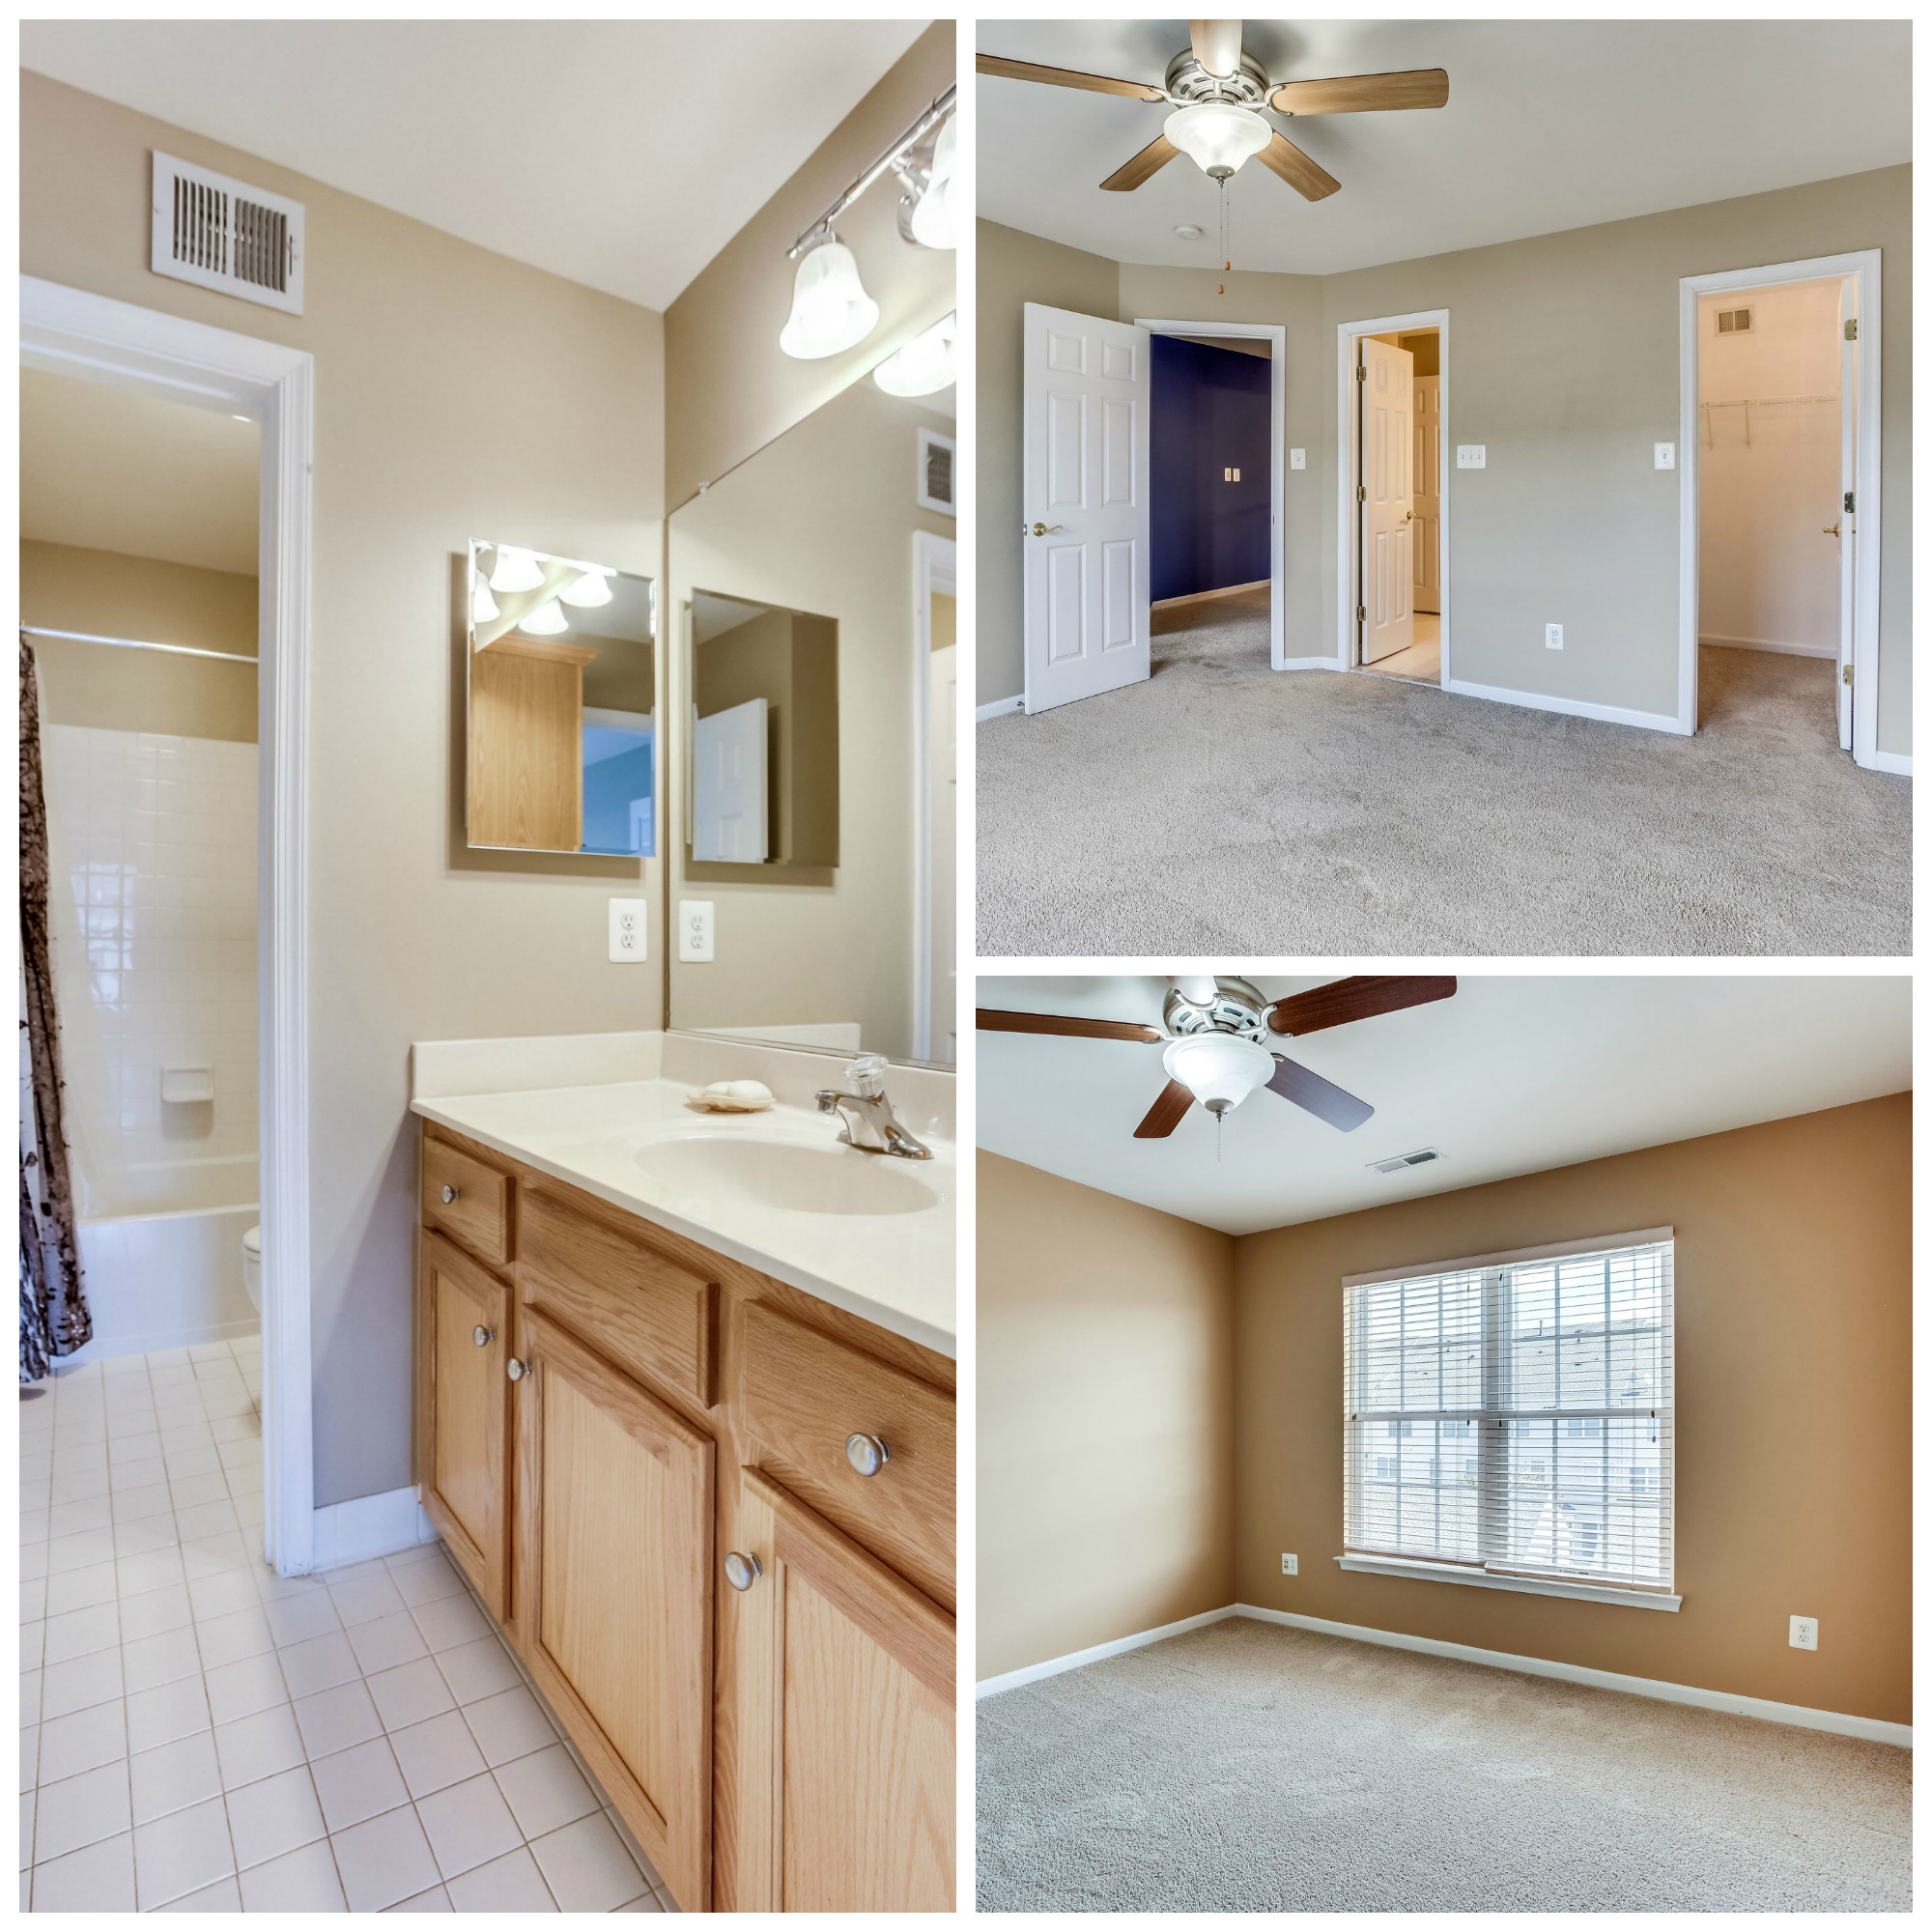 42494 Legacy Park Dr - Brambleton- Additional Bedrooms and Bathroom